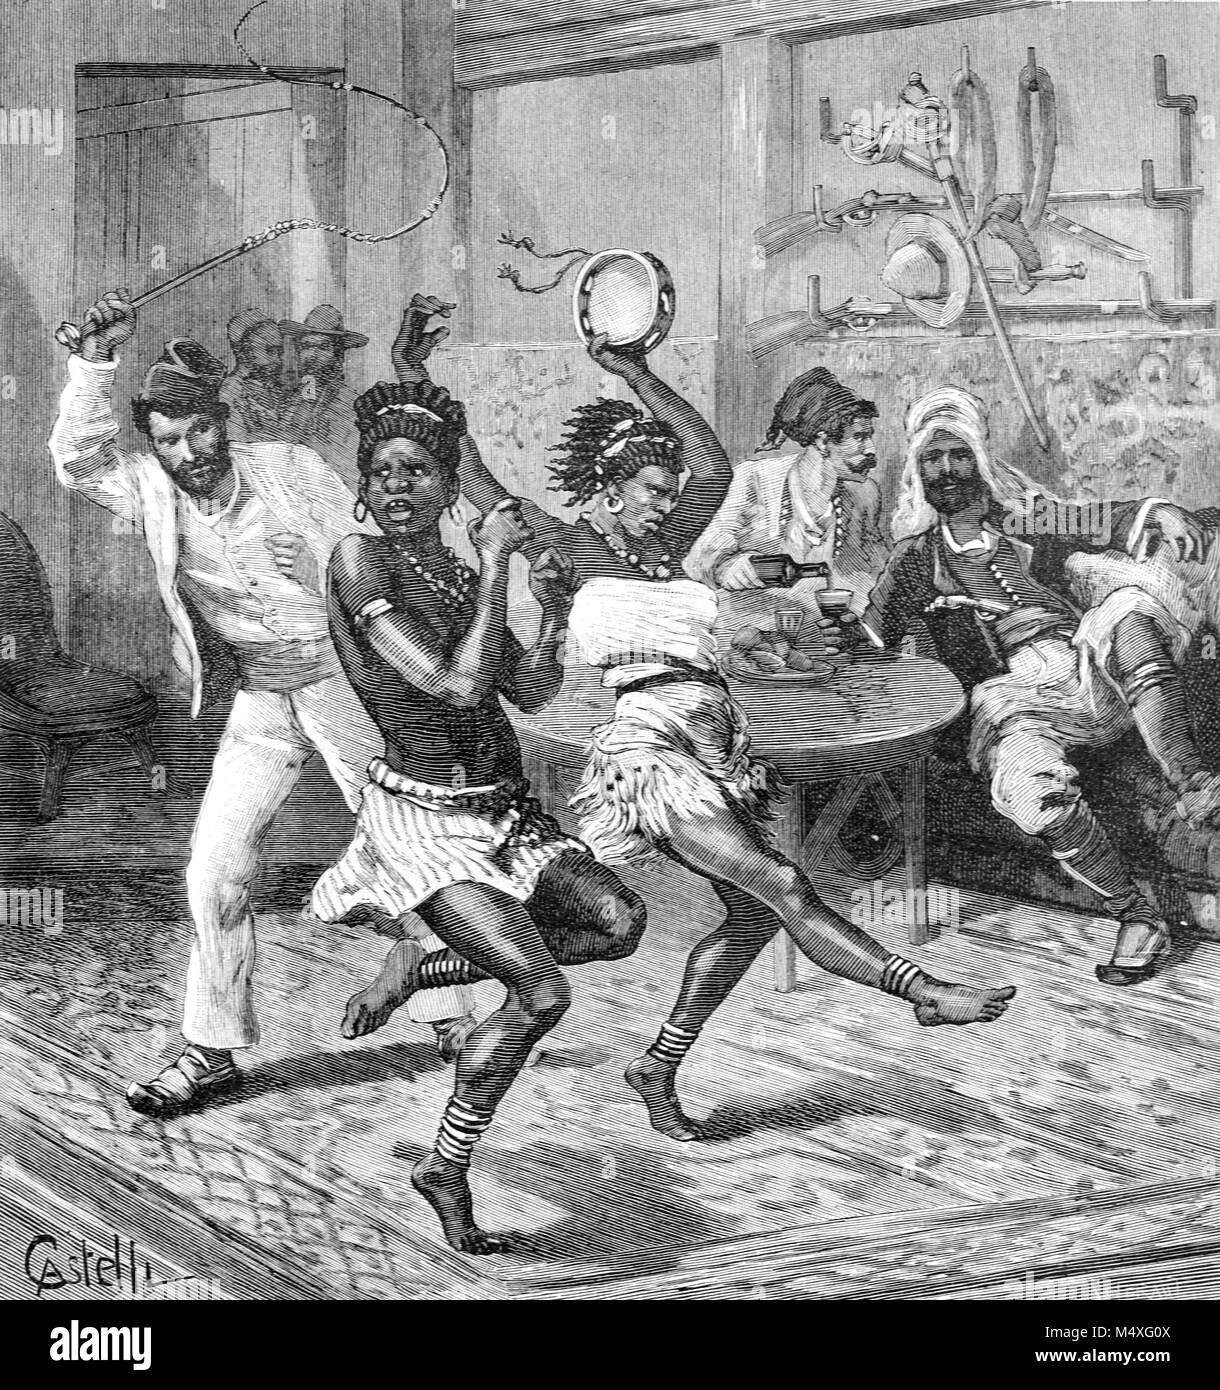 Slave Traders including Portuguese Man (with Whip) and Arab or Middle Eastern Man (Seated) or Men Whipping and Abusing - Stock Image